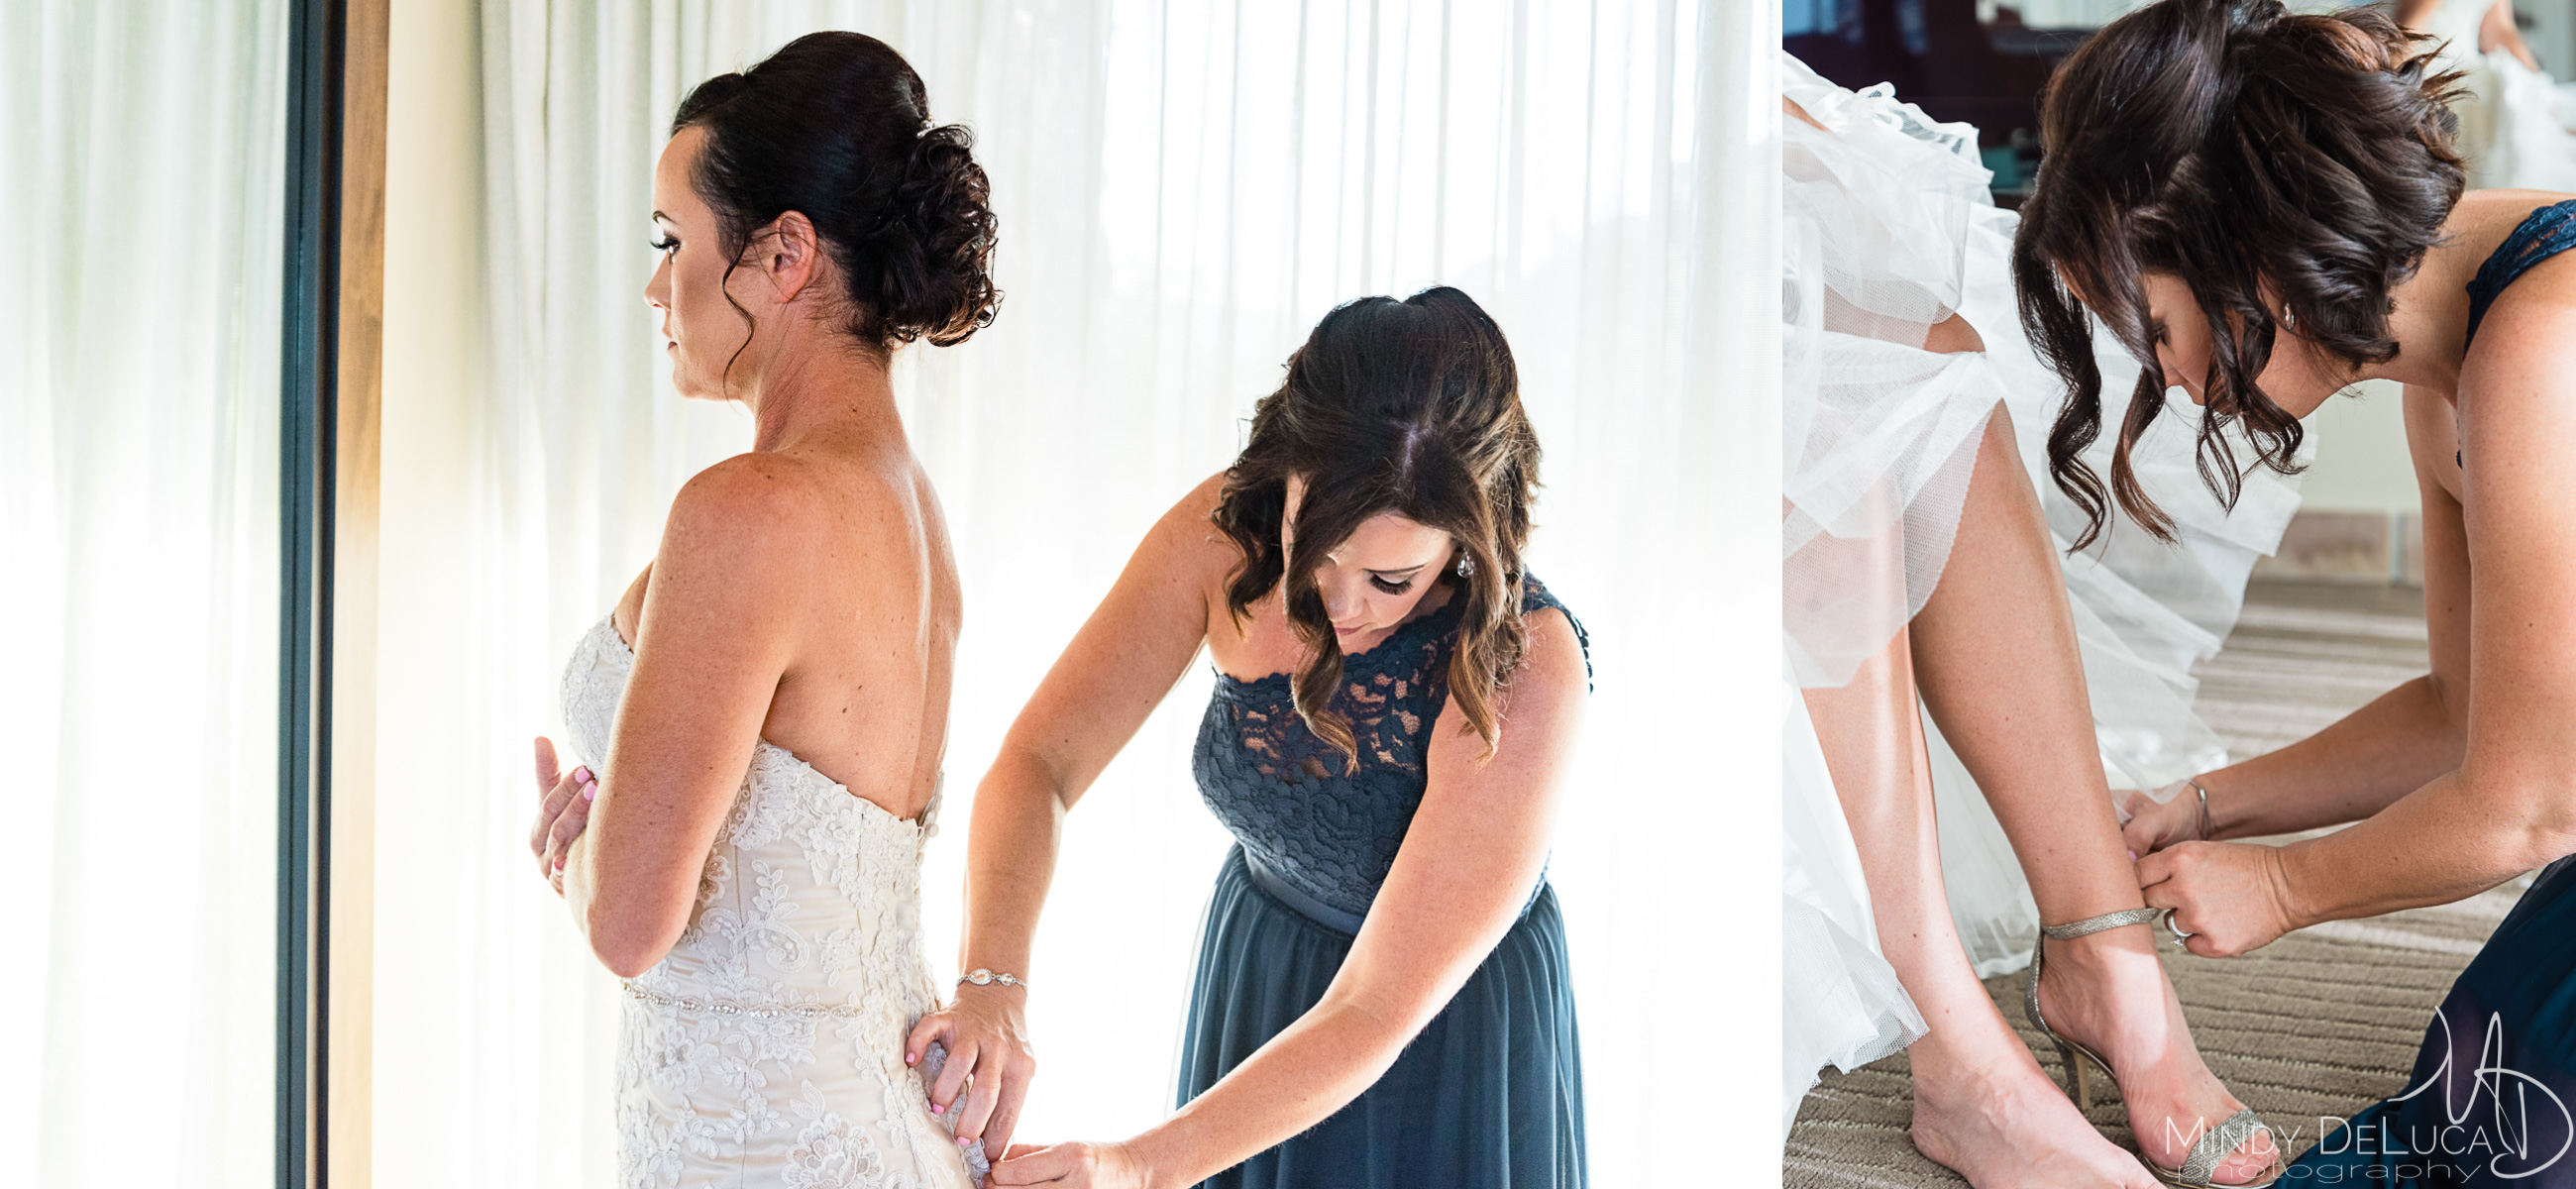 Maid of honor helps bride